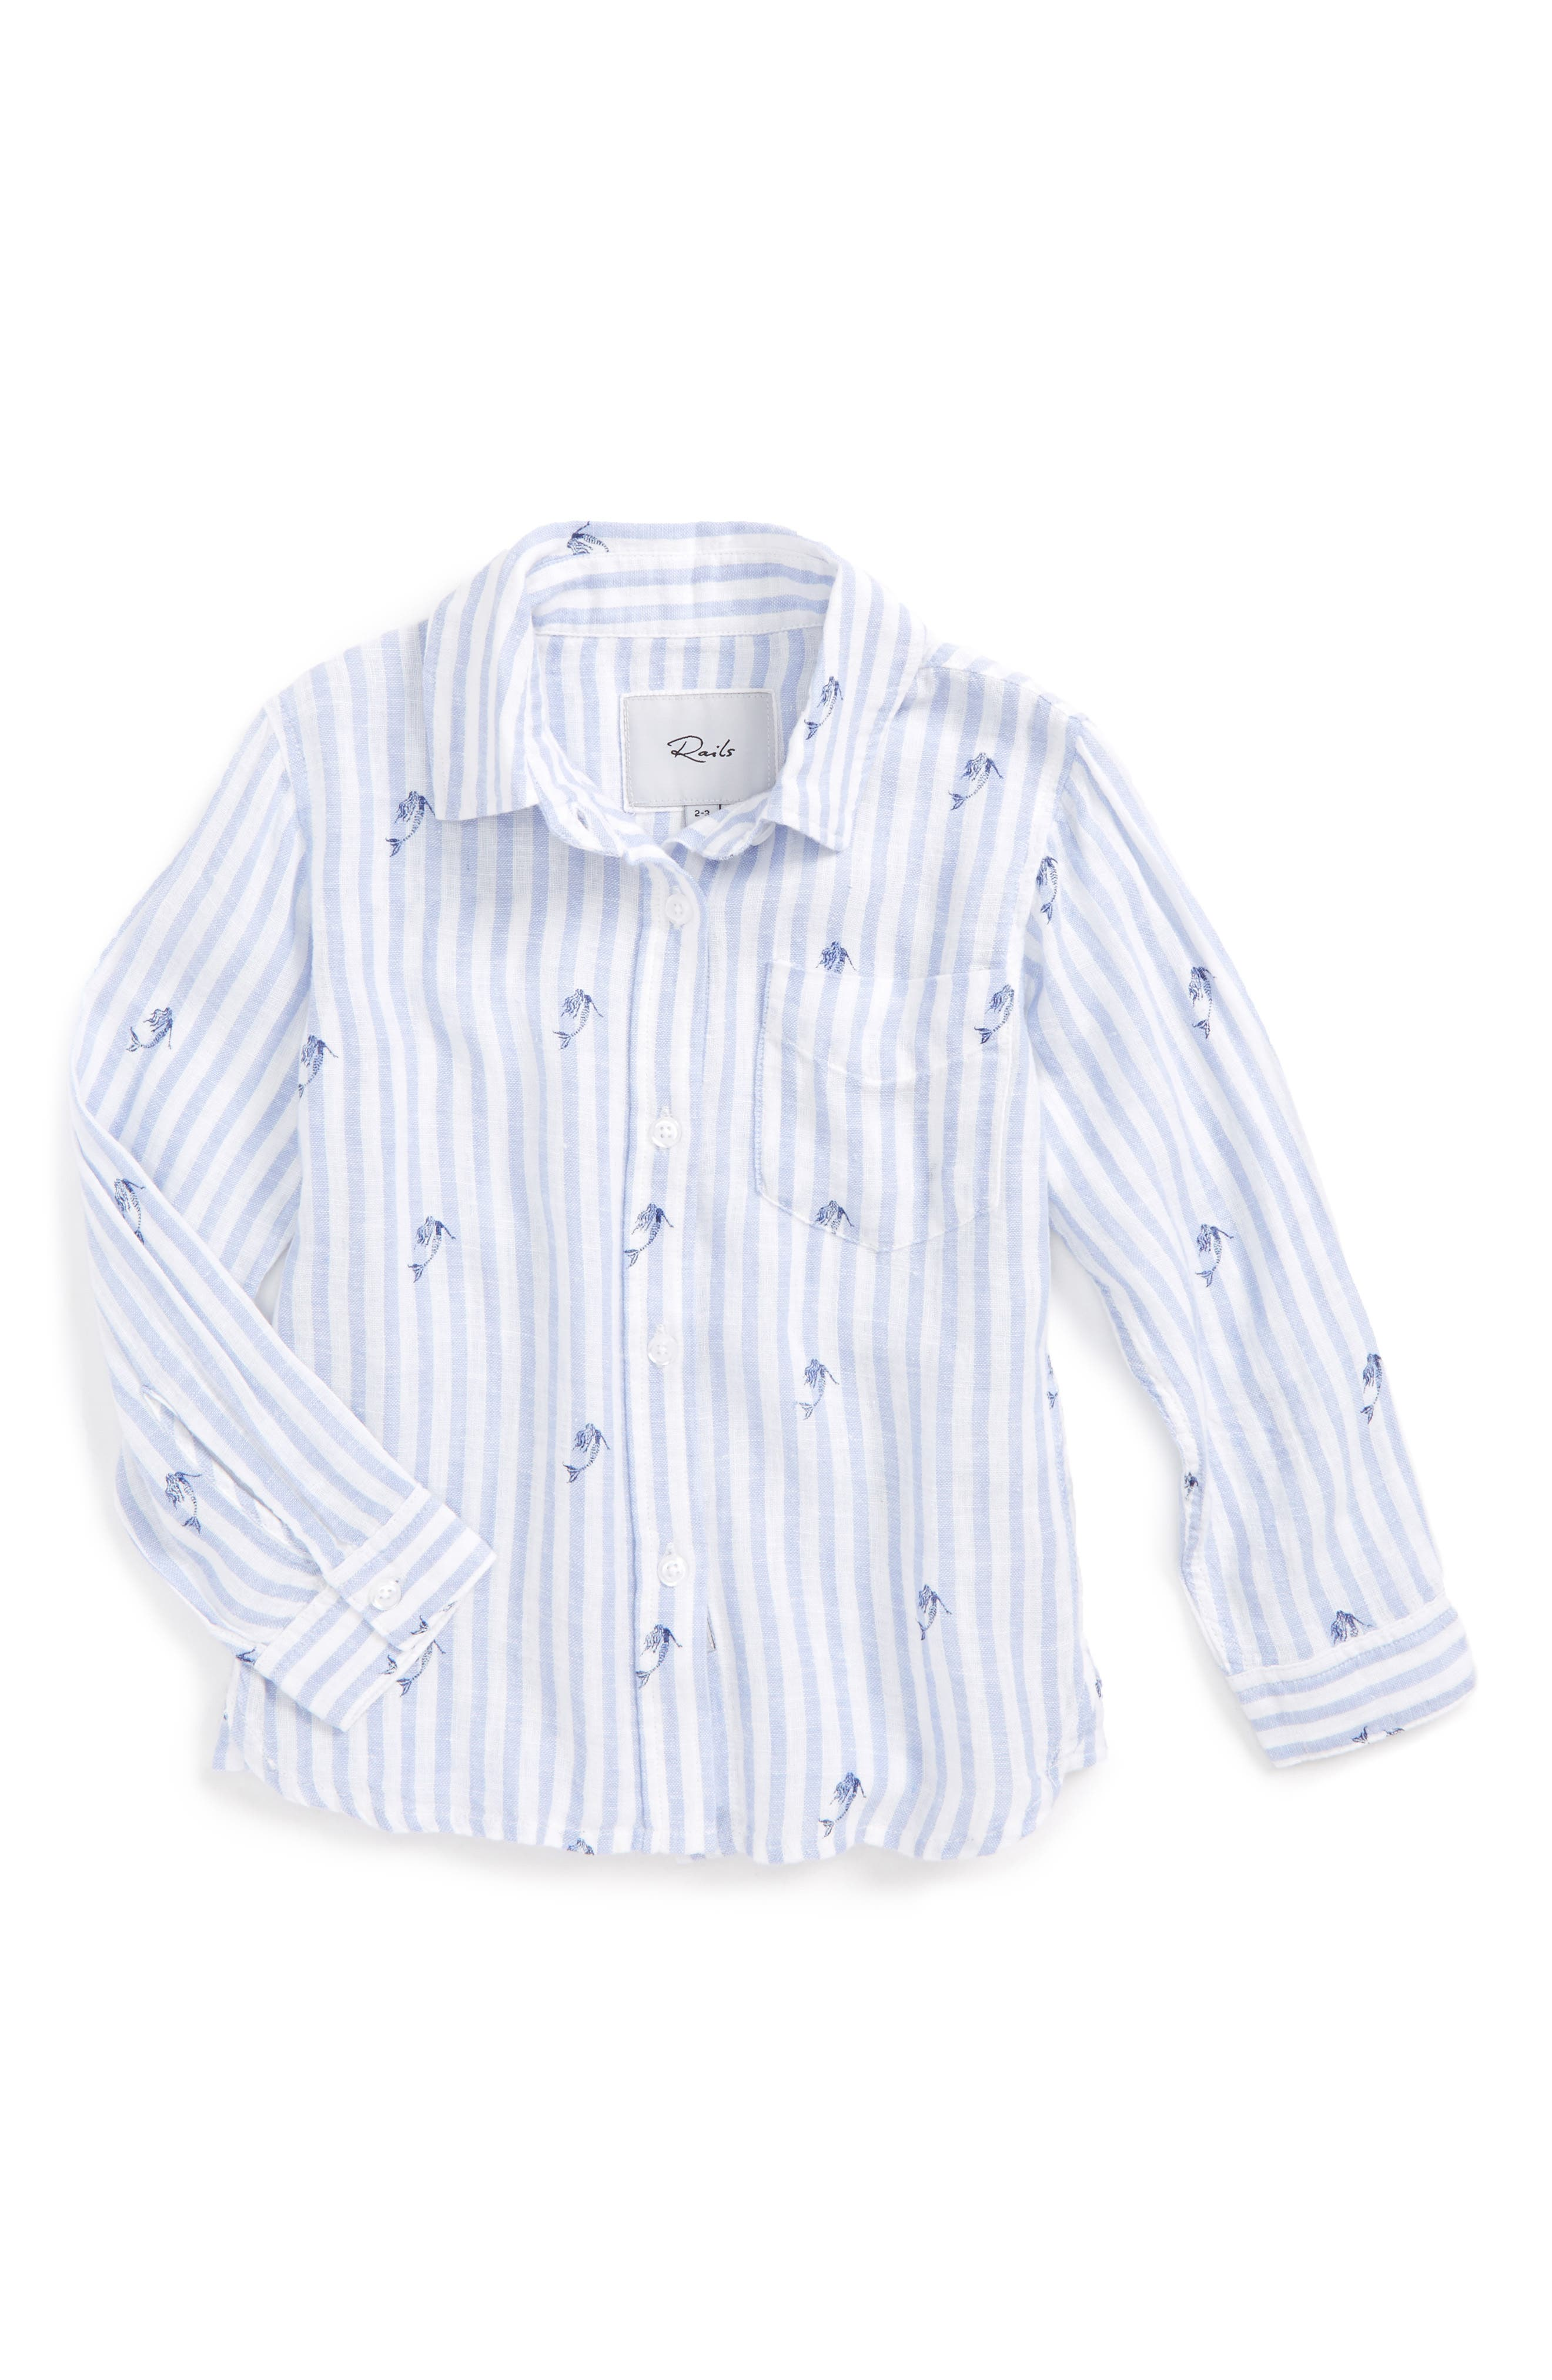 Alternate Image 1 Selected - Rails Cora Mermaid Stripe Button Front Shirt (Toddler Girls, Little Girls & Big Girls)